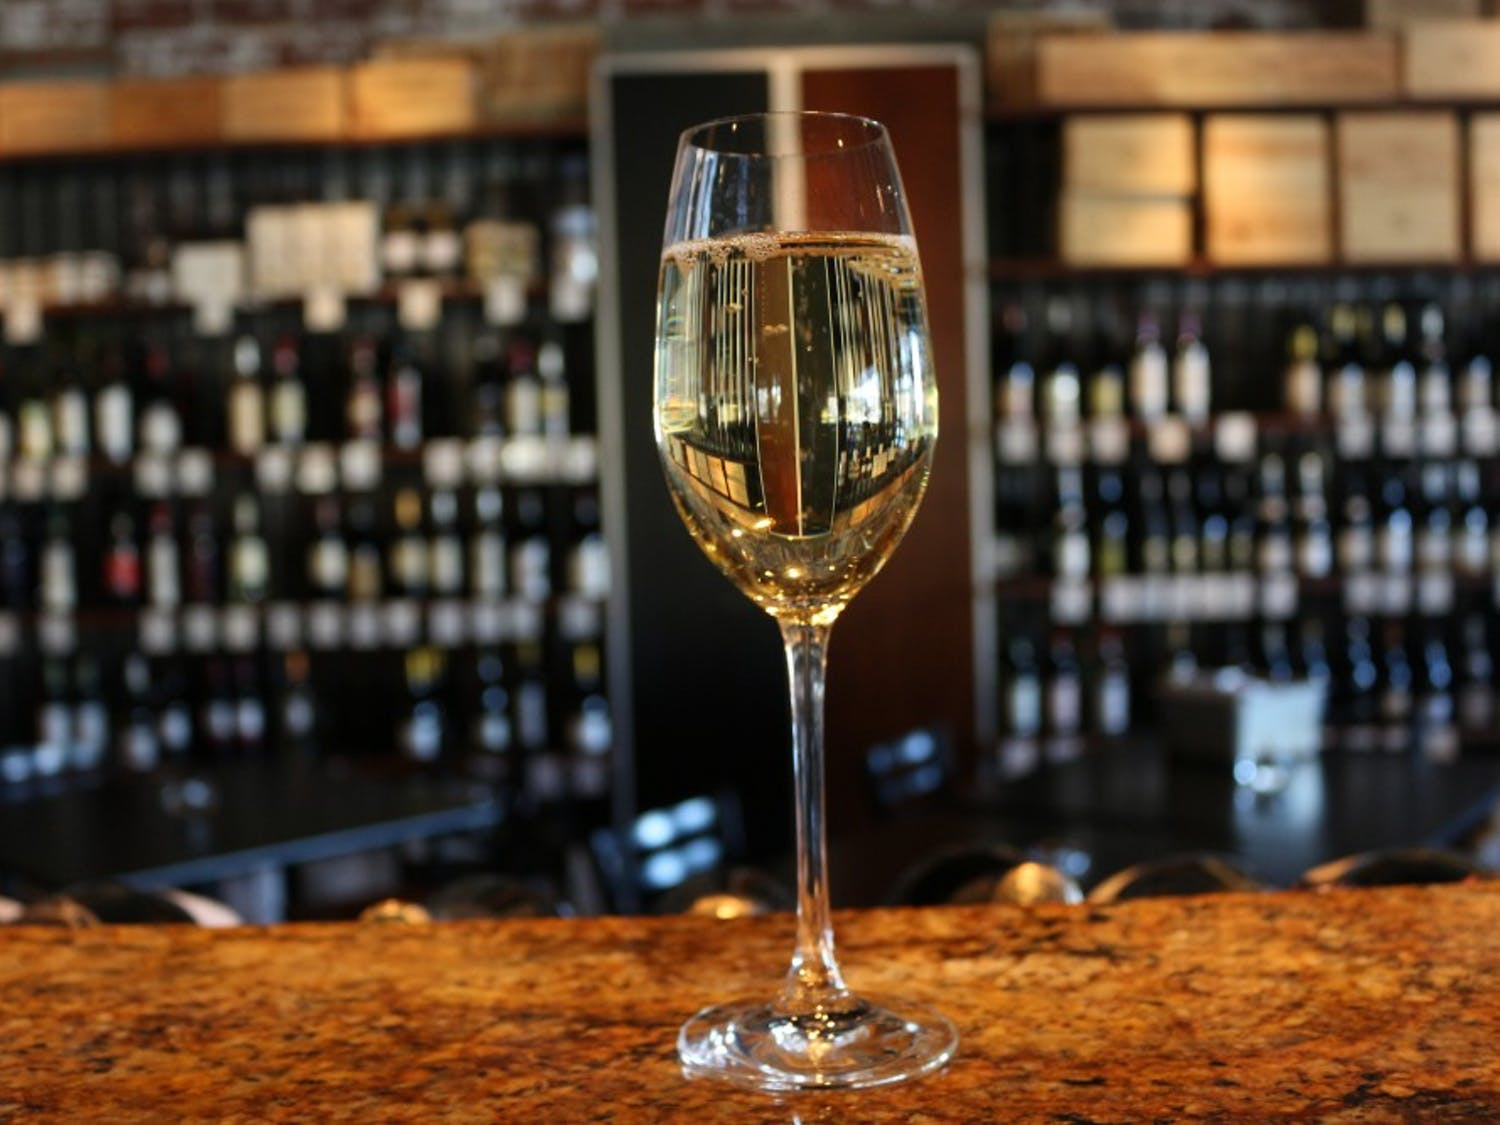 Glasshalfull, located in downtown Carrboro, is a restaurant, bar, and wine shop that contributes 10% of their sales every Tuesday and Wednesday to local charities, such as PORCH and Orange County Literacy Council. The food and wine offered is influenced by the Mediterranean, and the wine shop offers hundreds of selections from around the world.